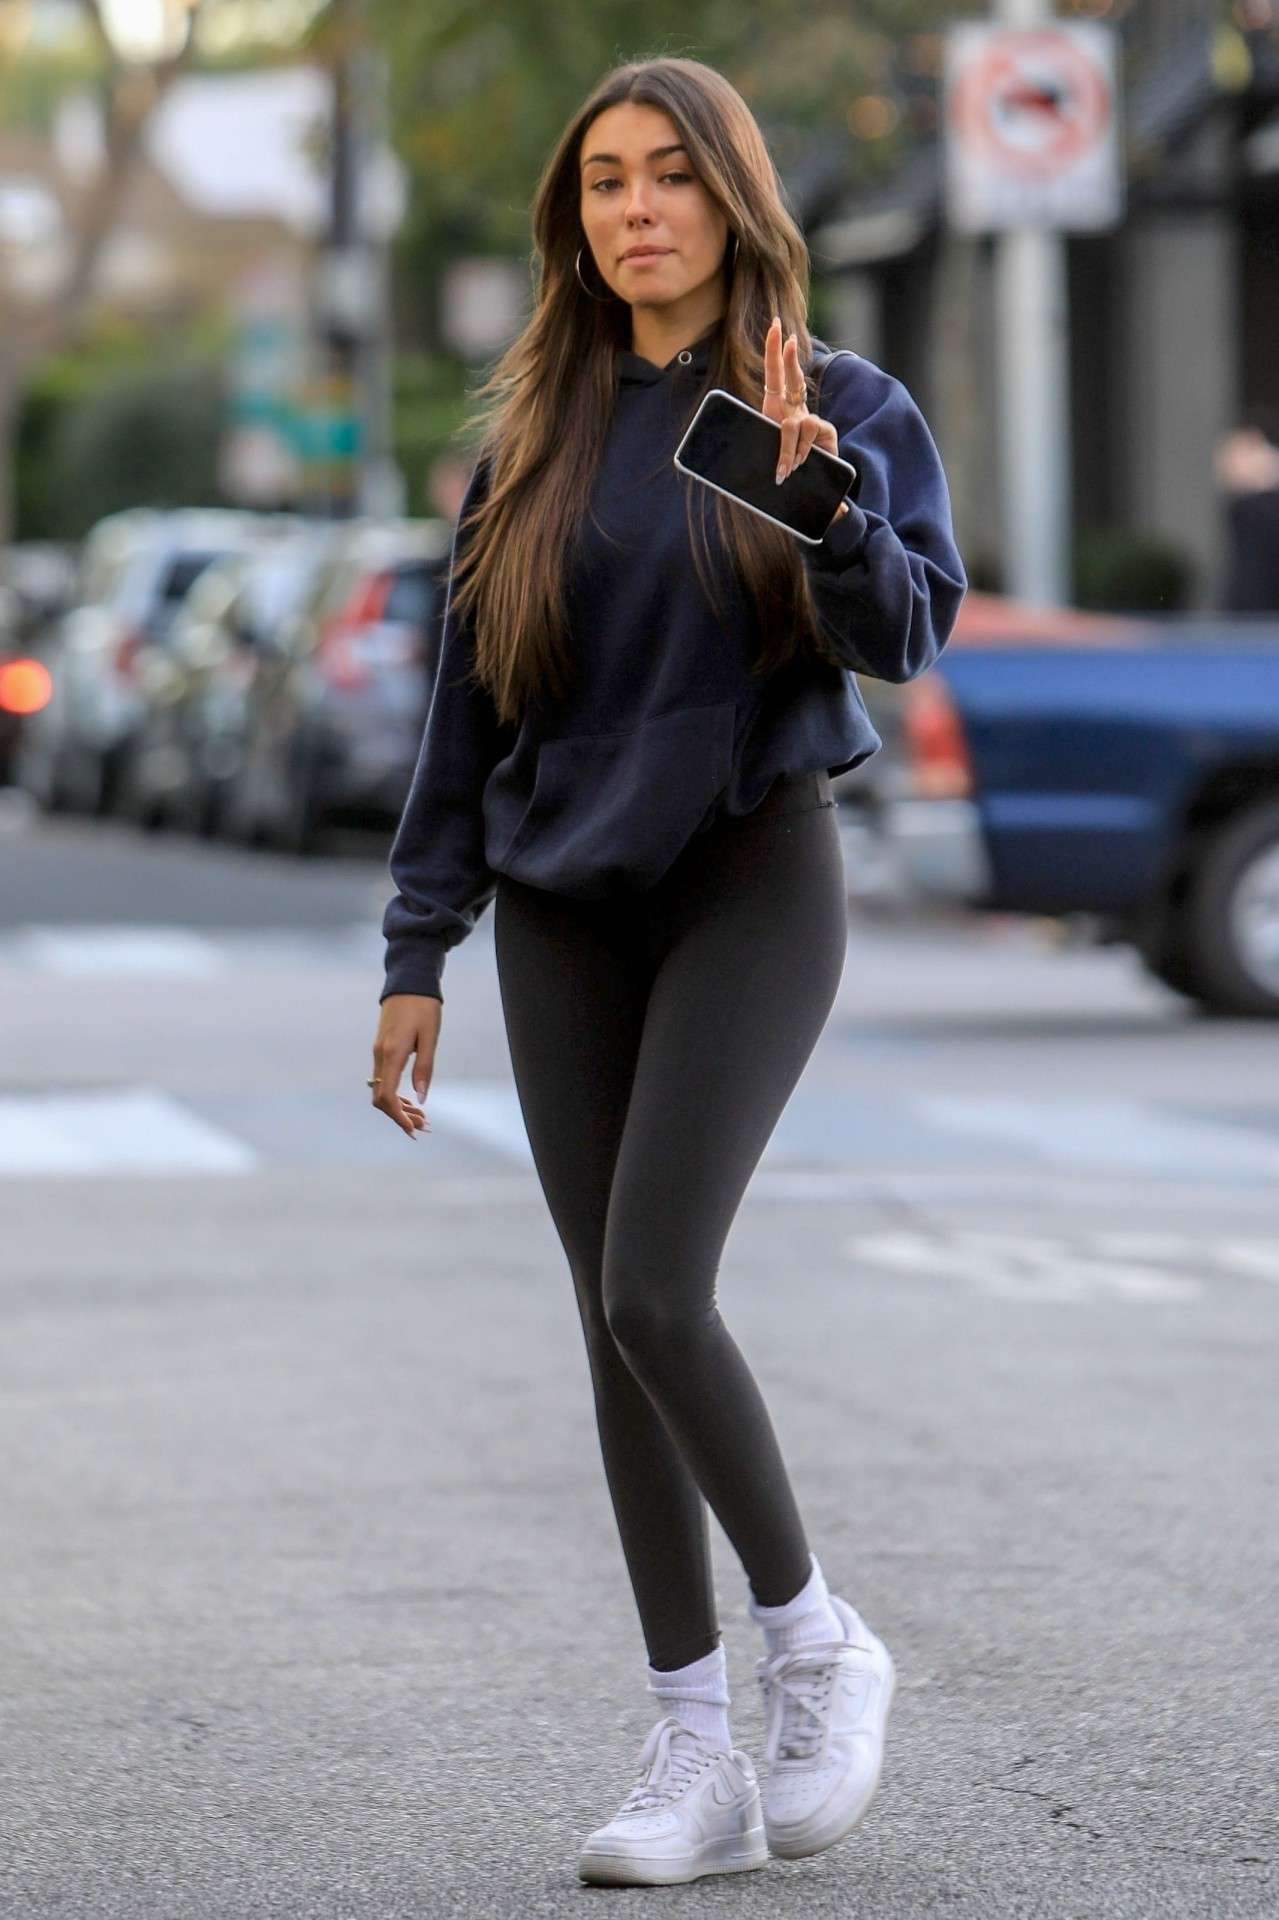 Madison Beer Sexy Ass And Camel Toe